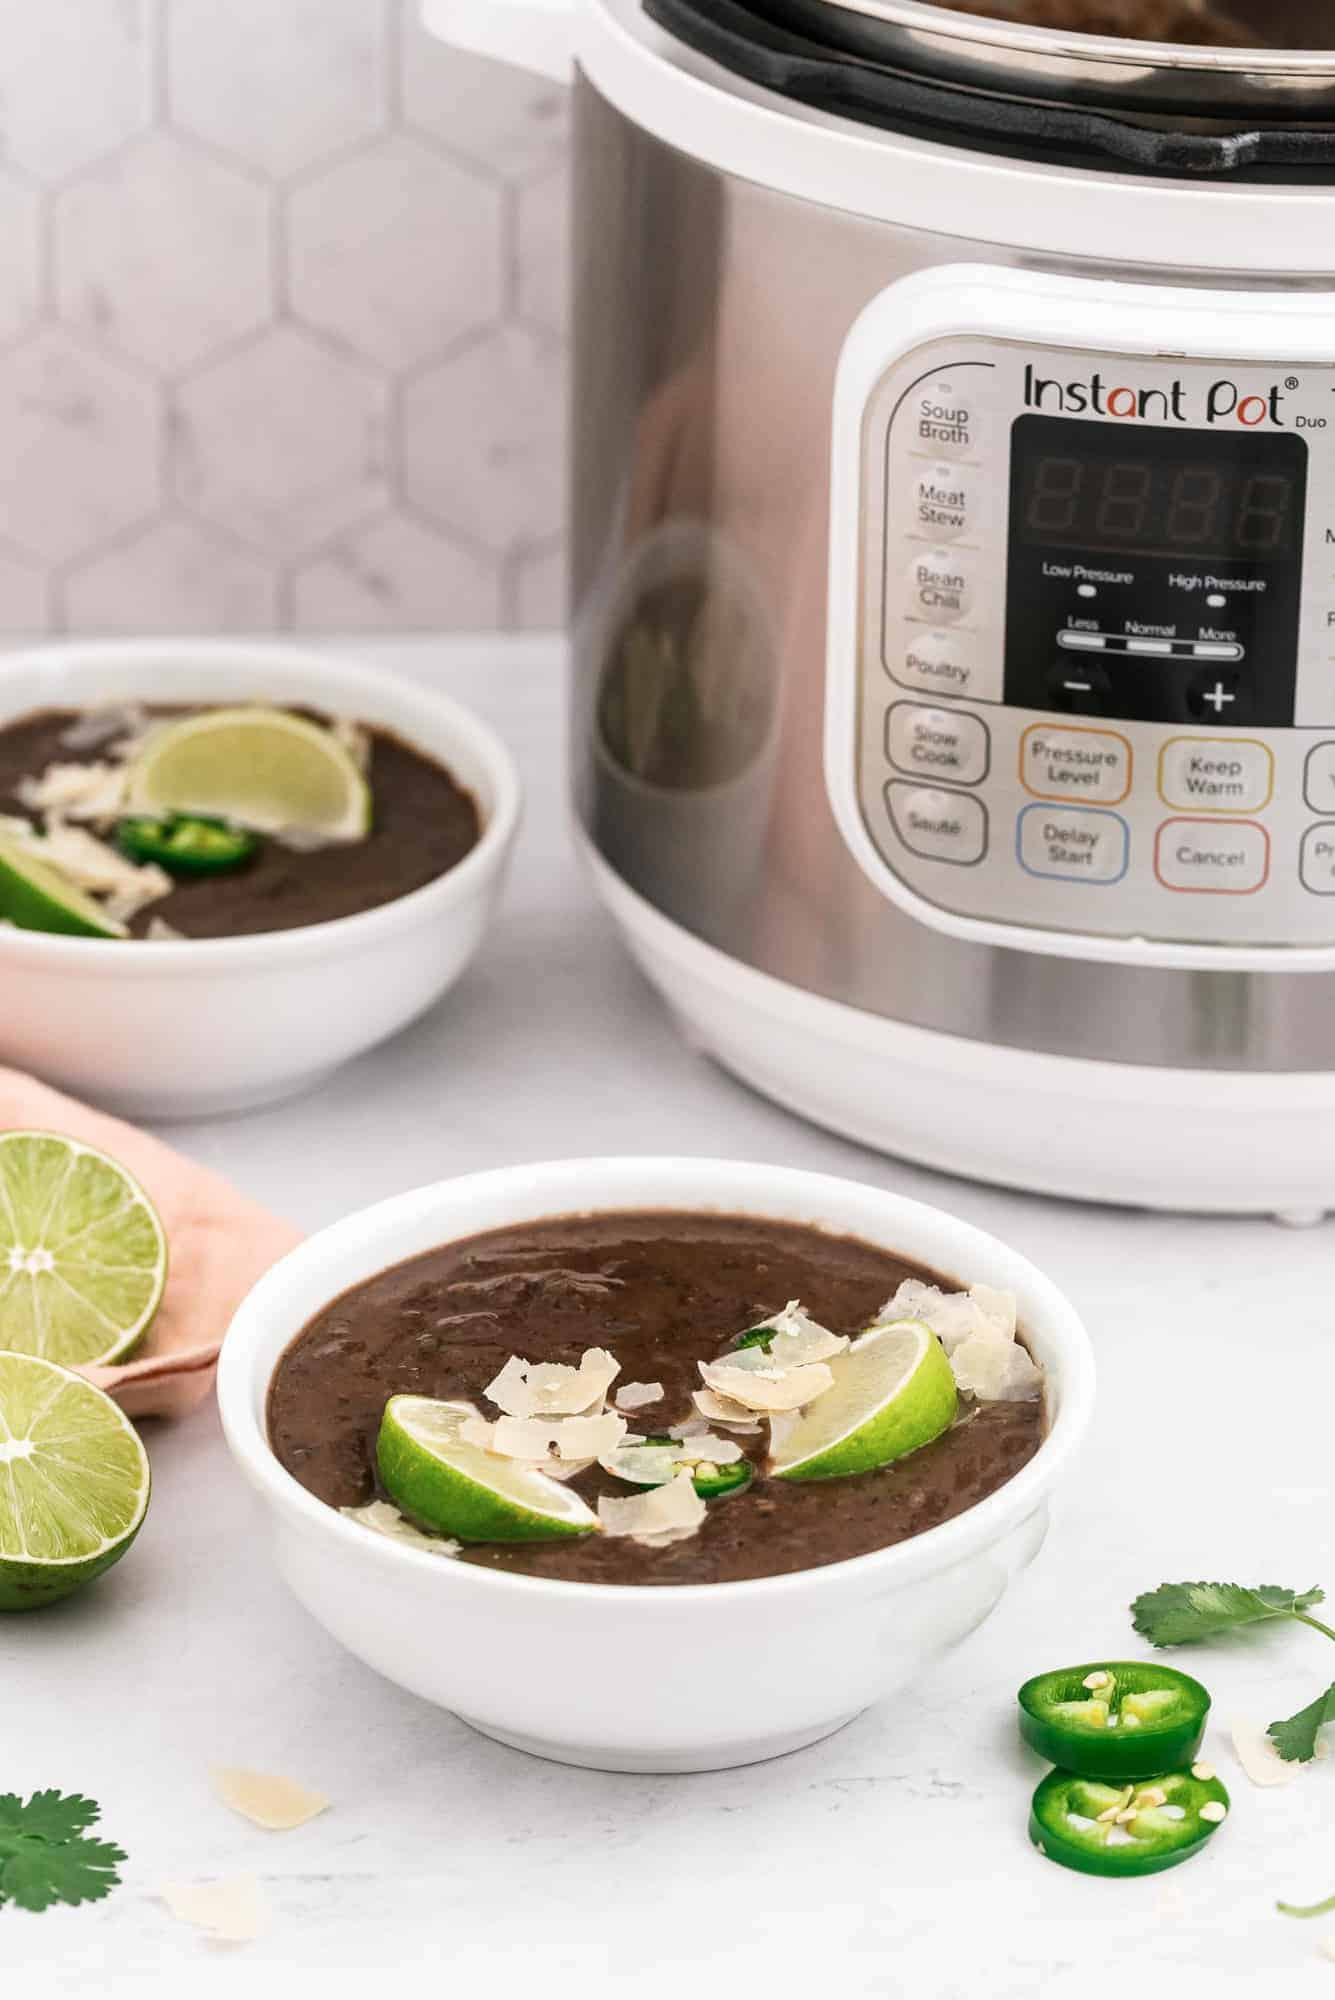 Two bowls of soup in front of an instant pot.